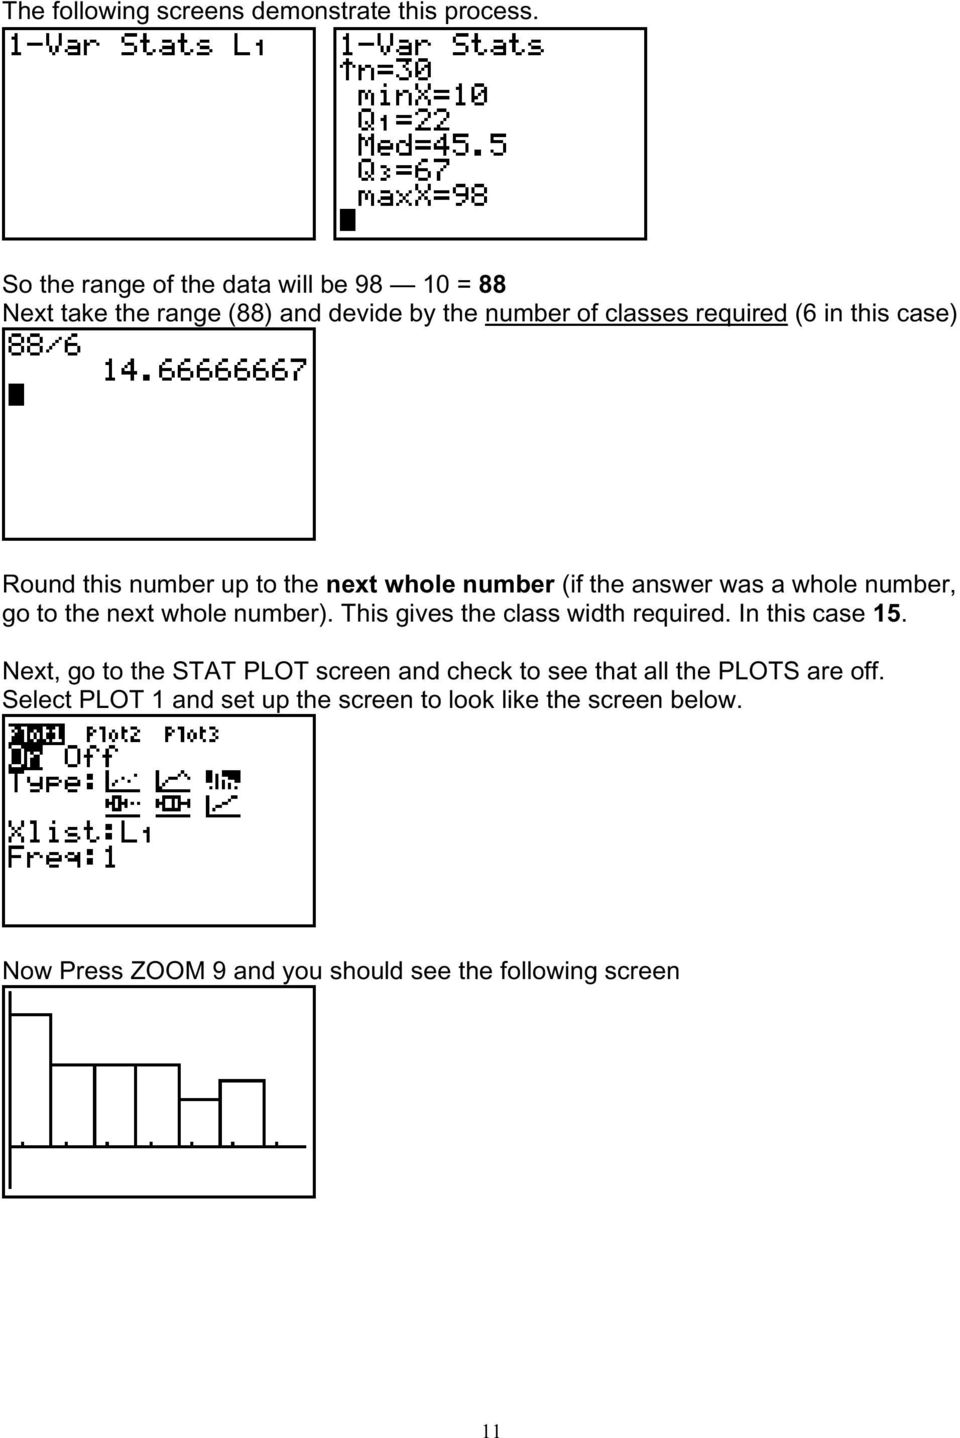 the answer was a whole number, go to the next whole number). This gives the class width required. In this case 15.